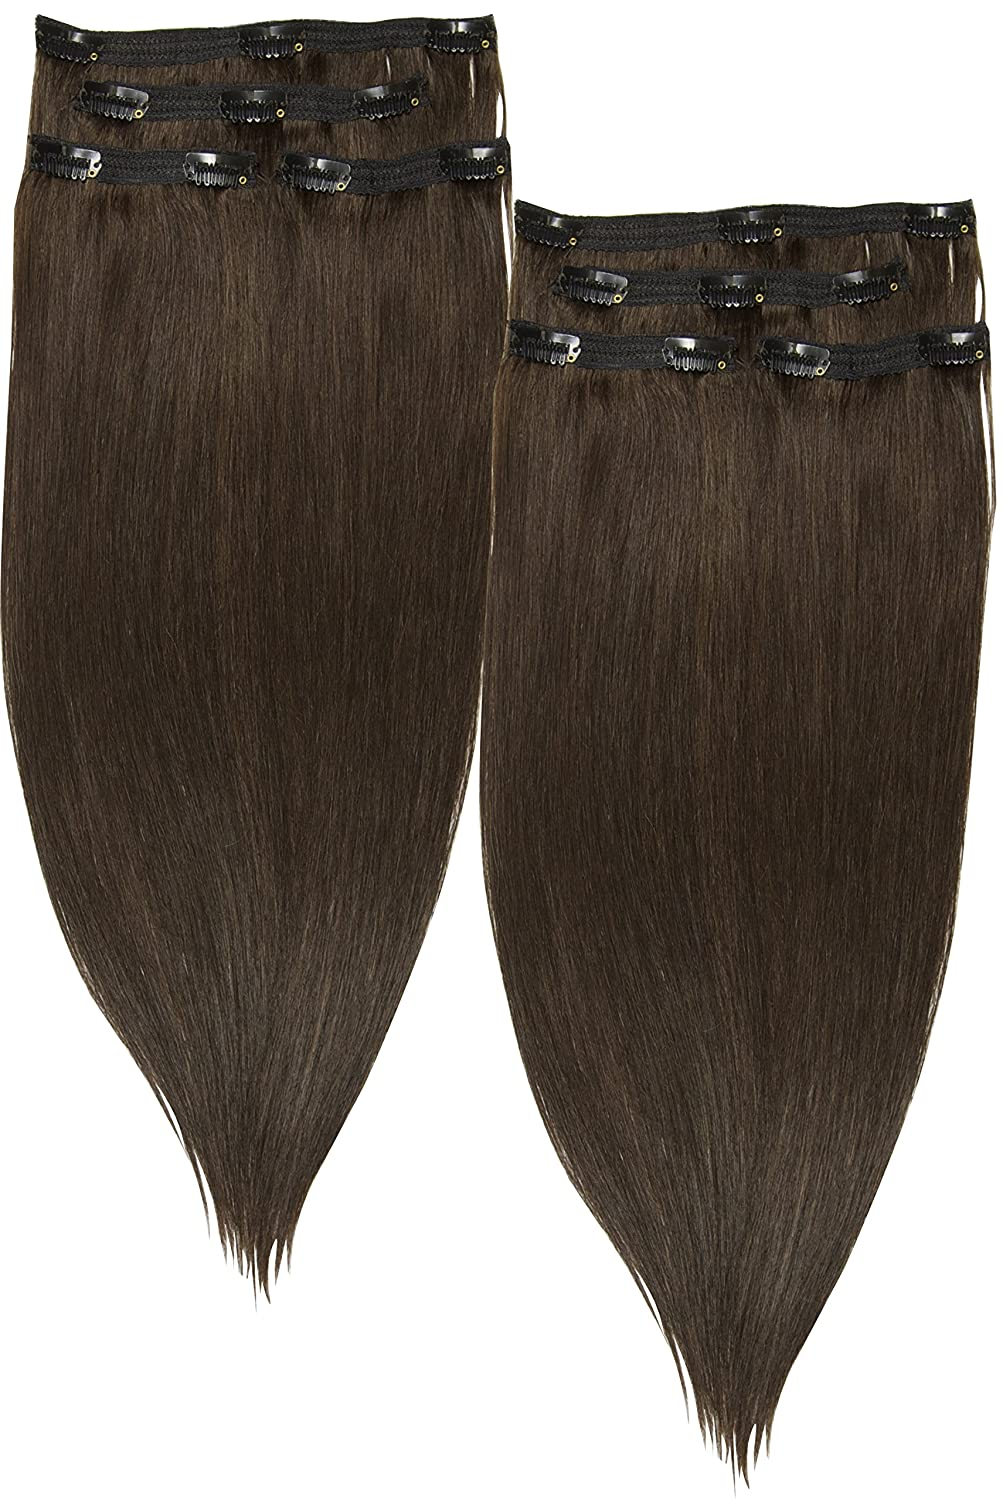 Amazon Fab 20 Long Straight Lace Weft Clip In Remy Human Hair